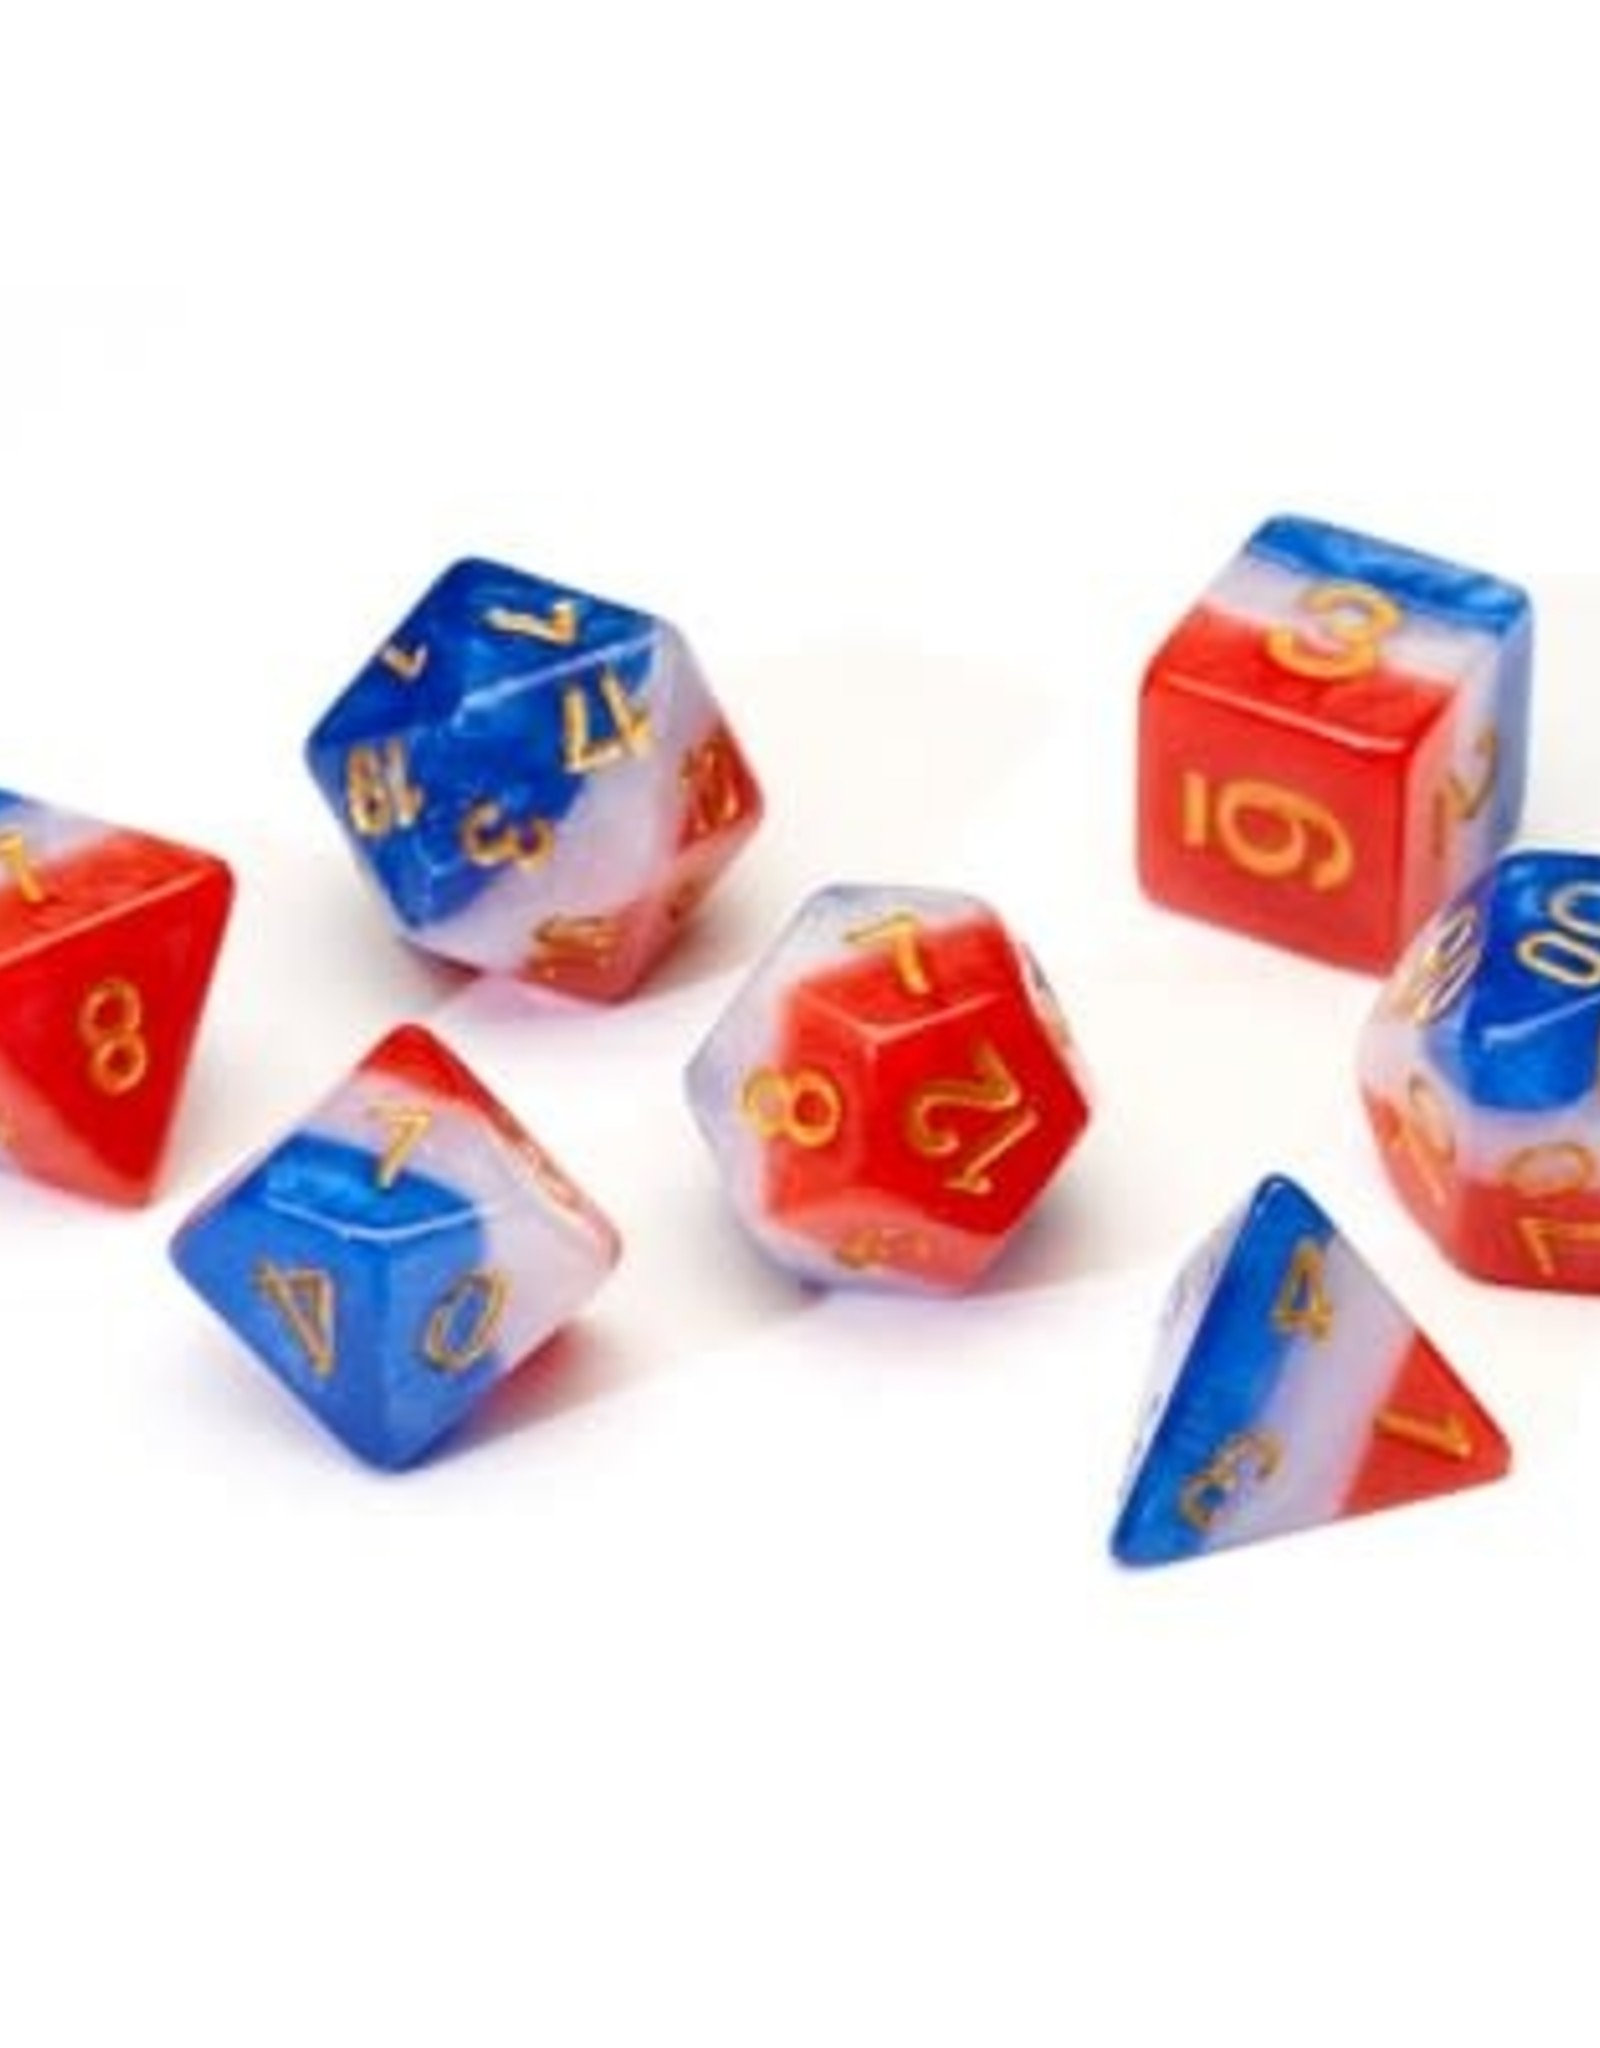 Sirius Dice Red, White, and Blue Semi-Transparent Resin 7-Die Set